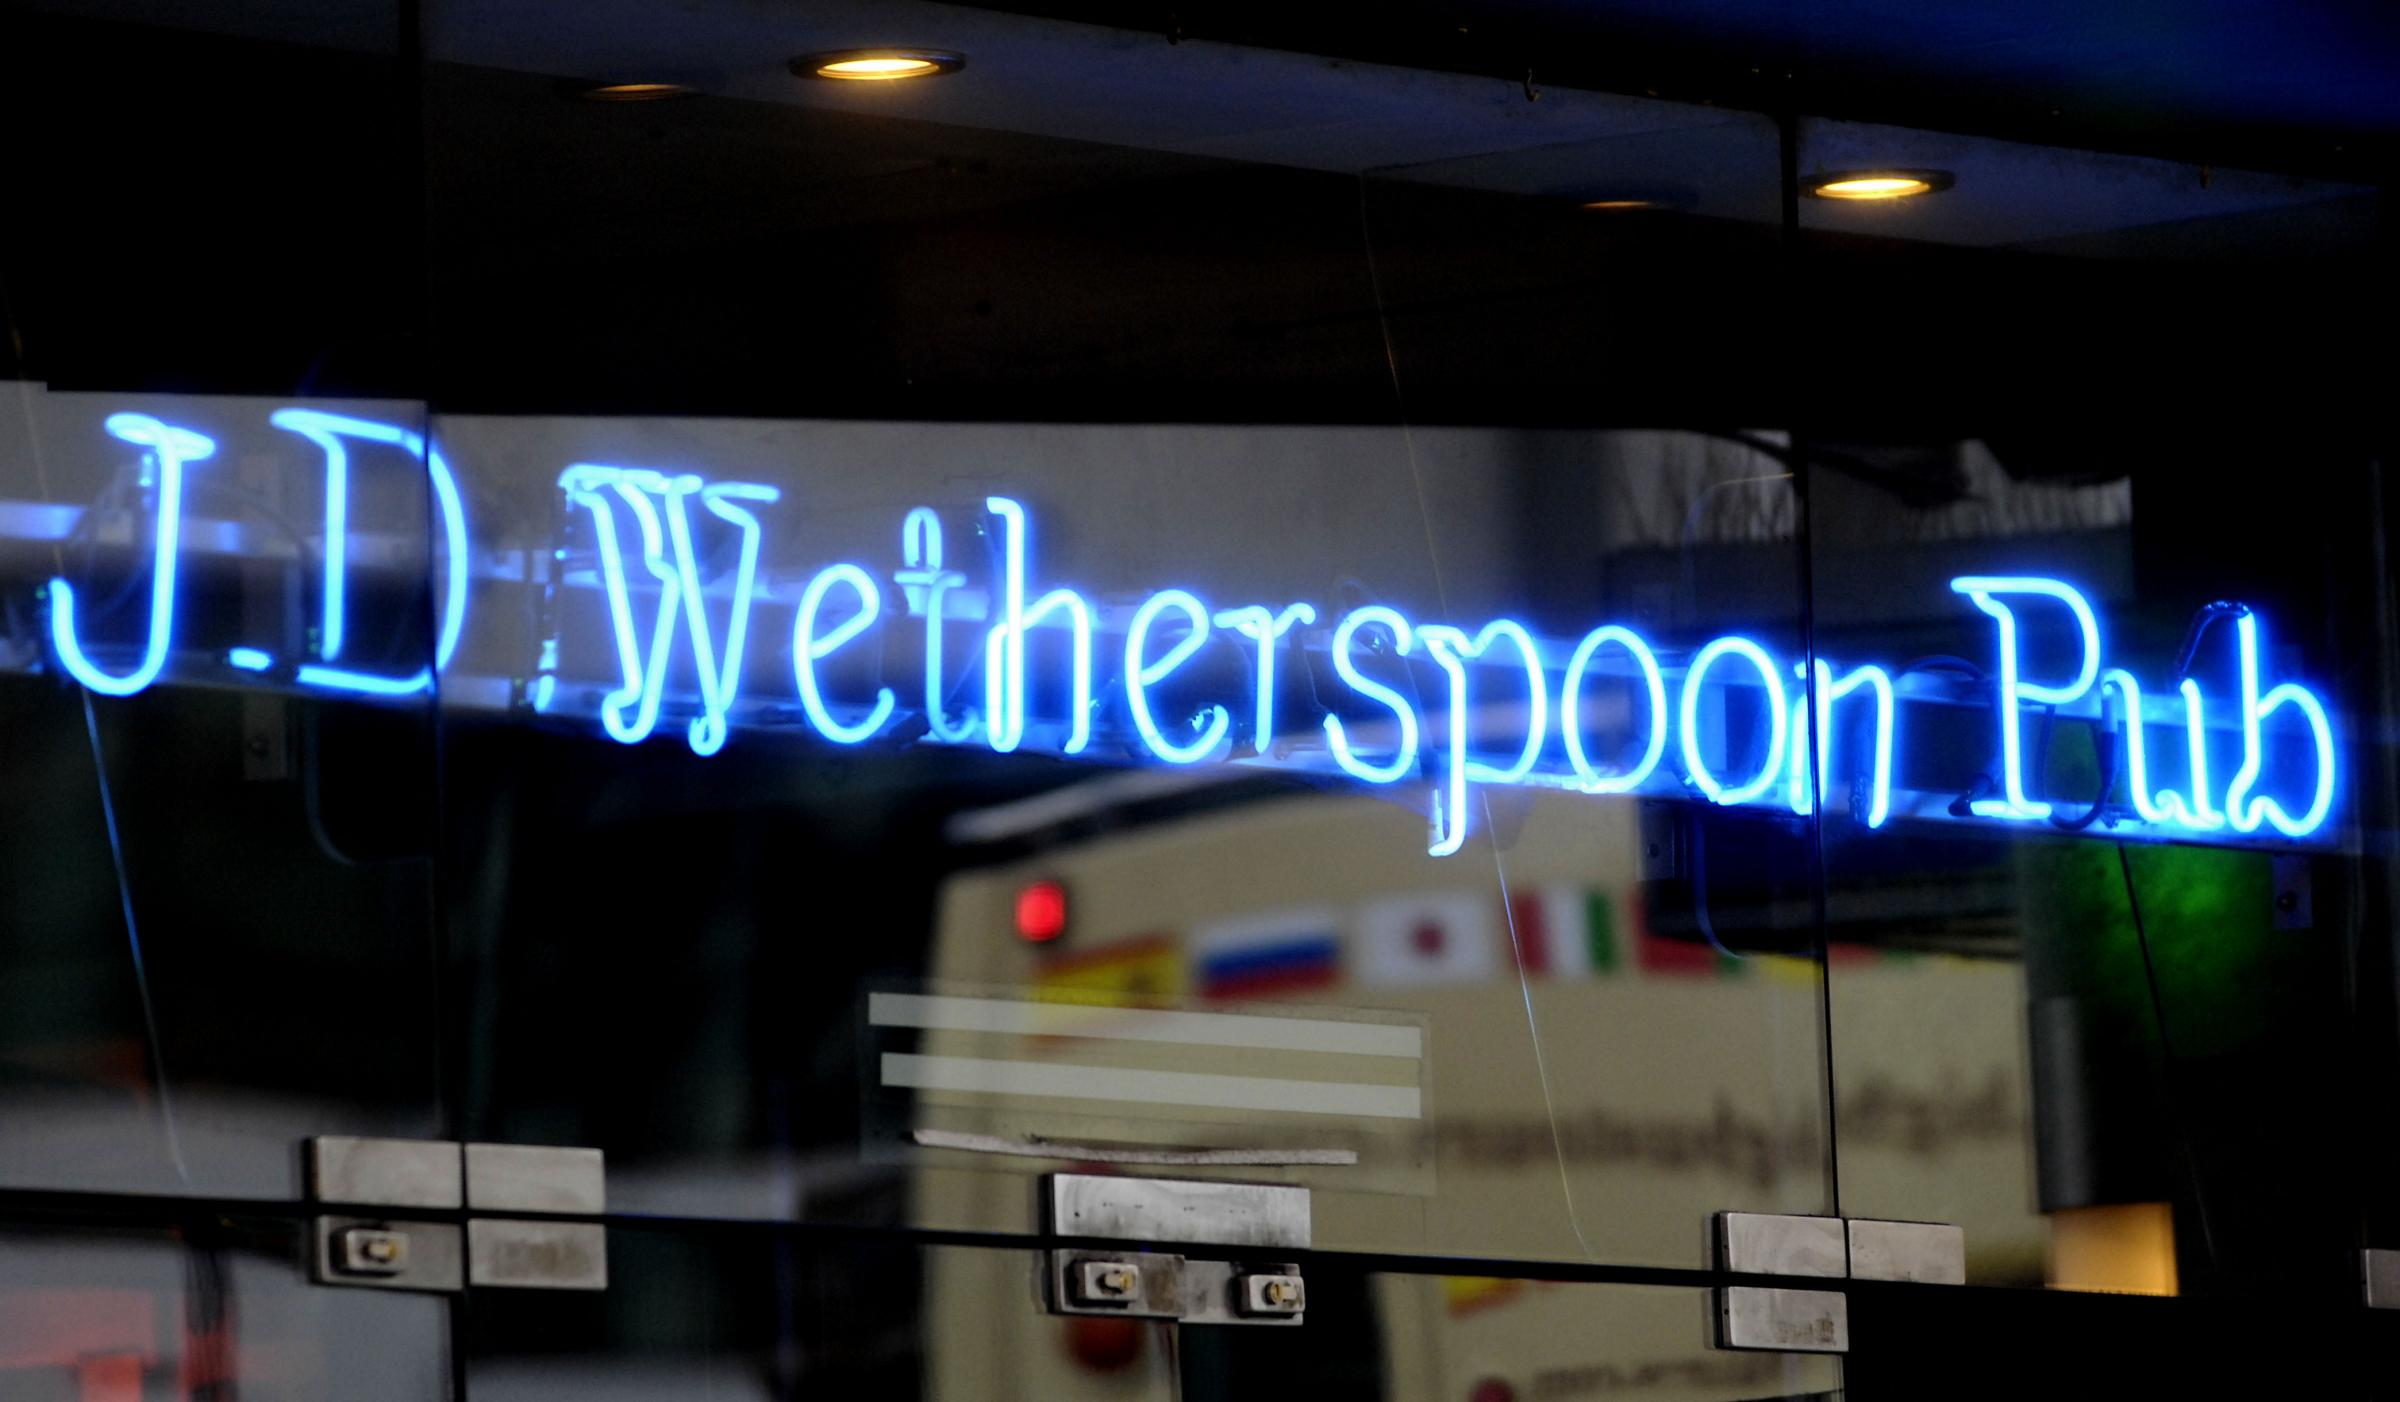 File photo dated 15/07/2015 of a Wetherspoon sign, as sales at pub chain were boosted by warm summer weather over the past three months, as the pub chain's Brexit-backing chairman launched another invective aimed at Remainers. PRESS ASSOCIATION Photo.